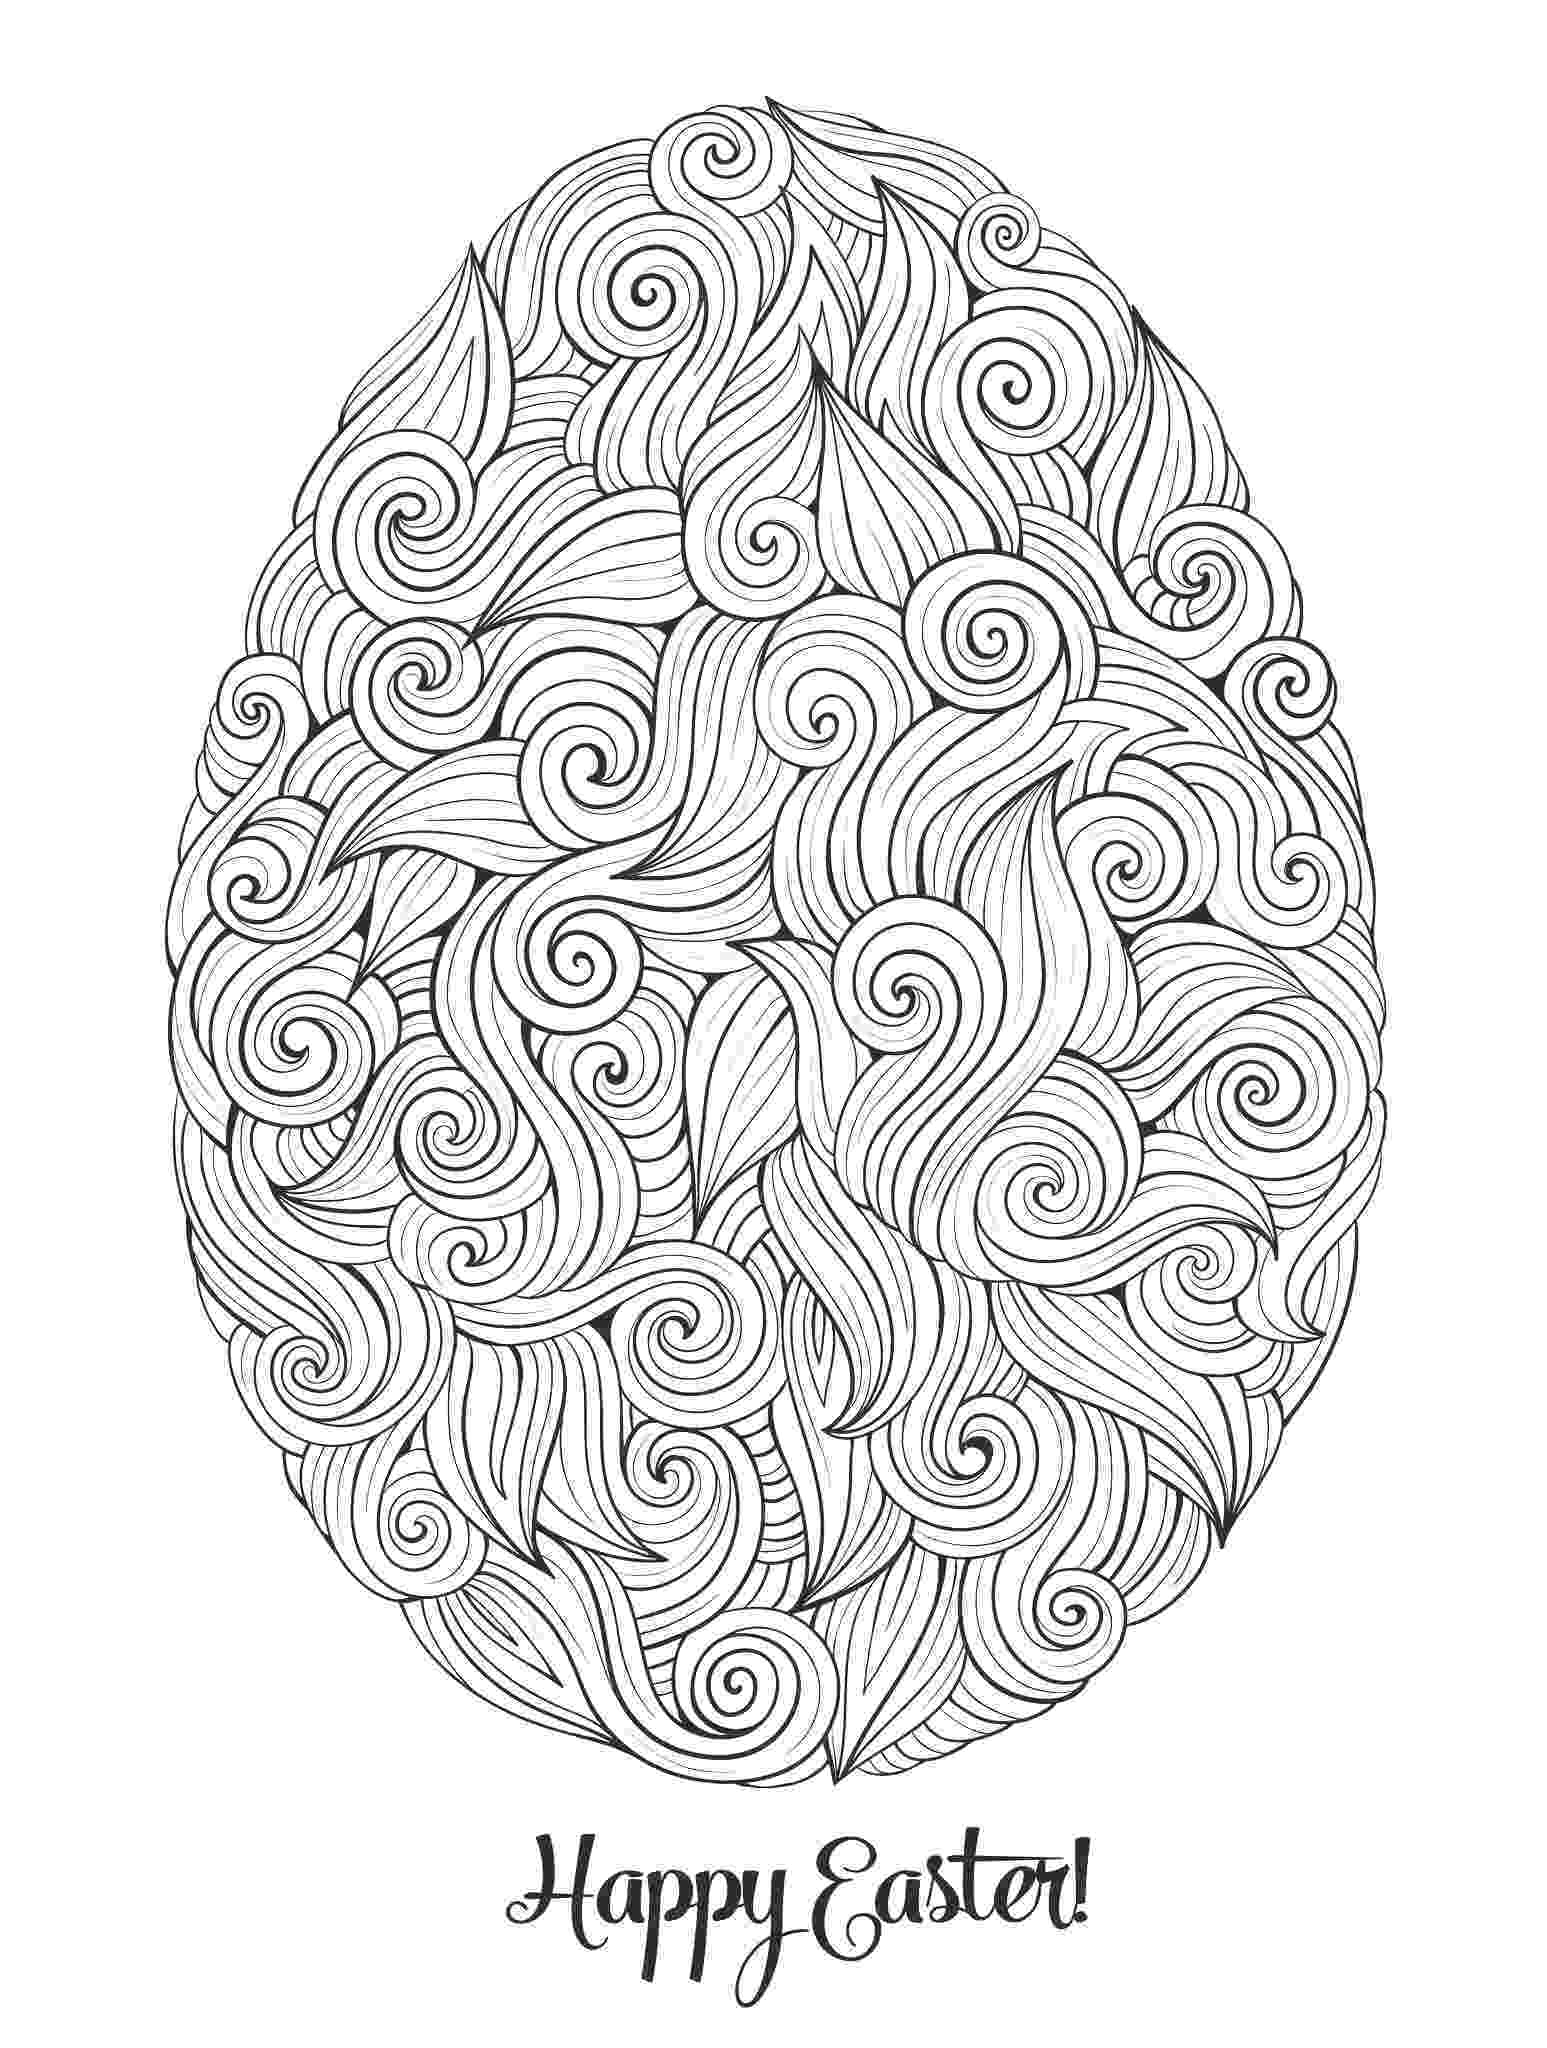 easter colouring pages printable for adults easter egg easter adult coloring pages colouring easter pages for printable adults